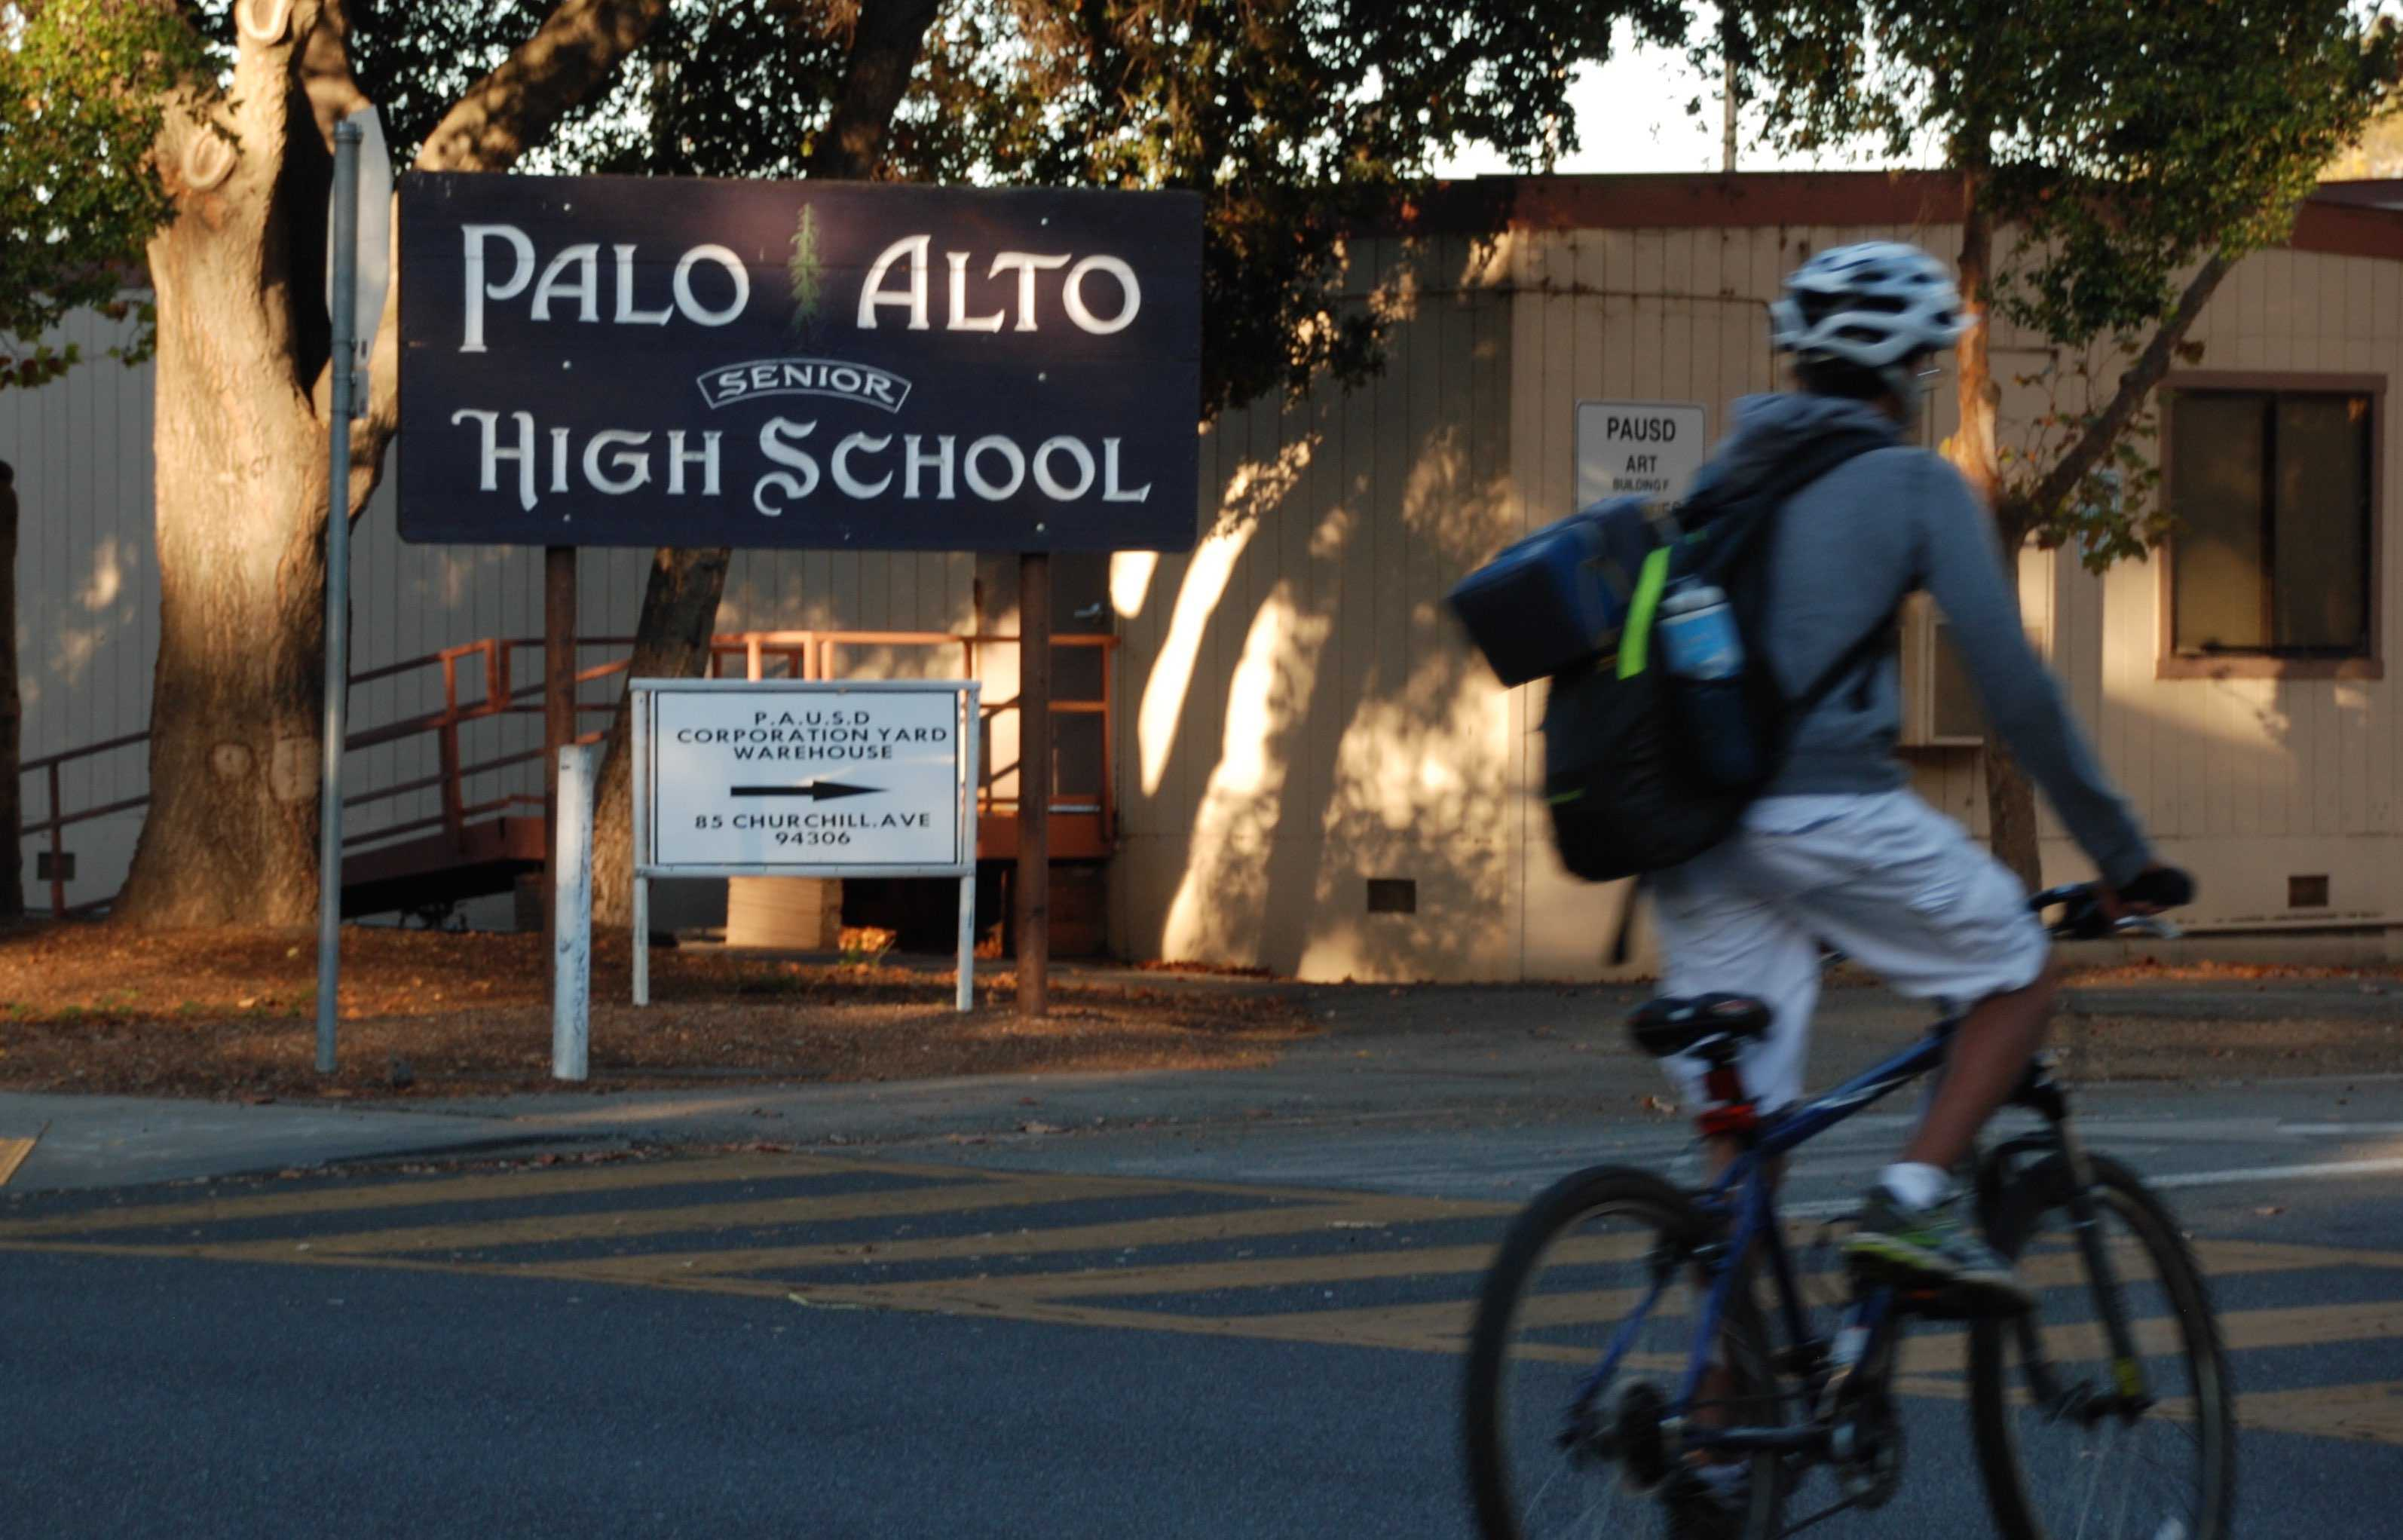 "A Palo Alto High School student bikes past the Paly sign located at the intersection of Churchill Avenue and Castilleja Avenue before school. The school sign, one that does not have legal trademark according to Assistant Principal Jerry Berkson, was featured on a flyer .. ""I think what he [the organizer of the event] did was deceptive in nature and I didn't like it,"" Assistant Principal Vicki Kim said. Photo by Jeanette Wong."